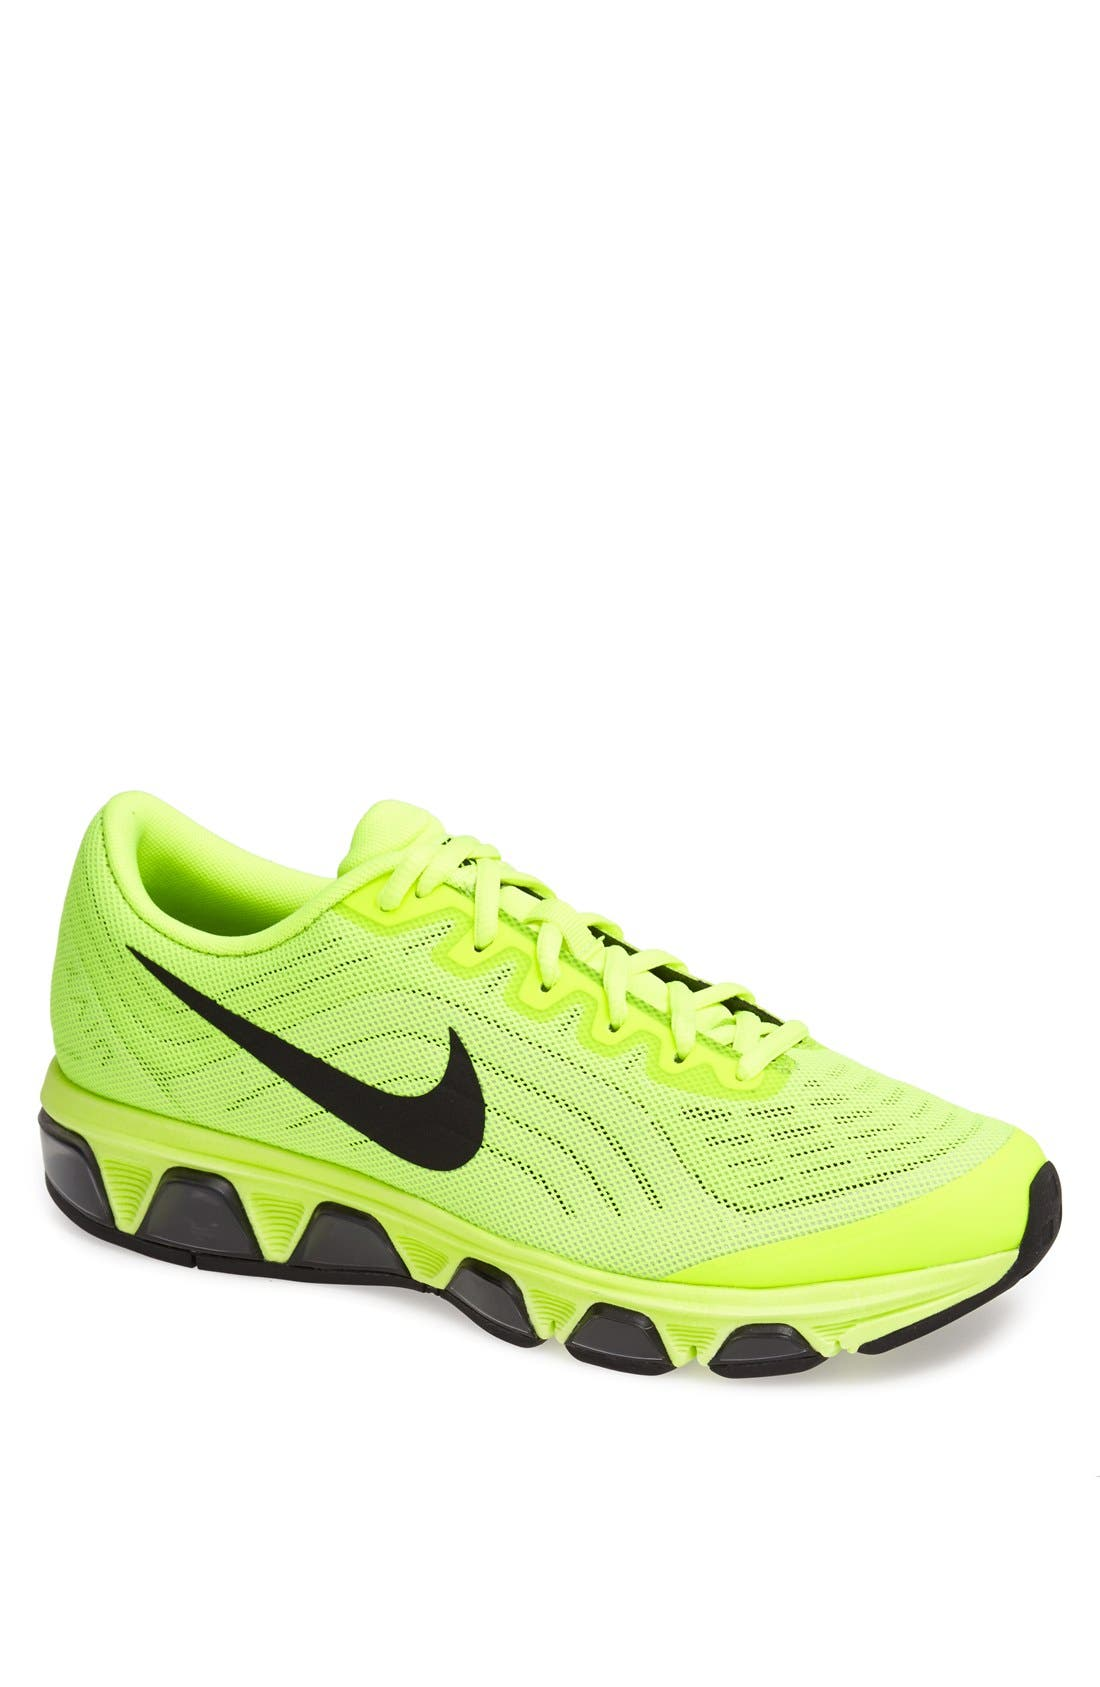 'Air Max Tailwind 6' Running Shoe,                             Main thumbnail 1, color,                             Volt/ Black/ Barely Volt